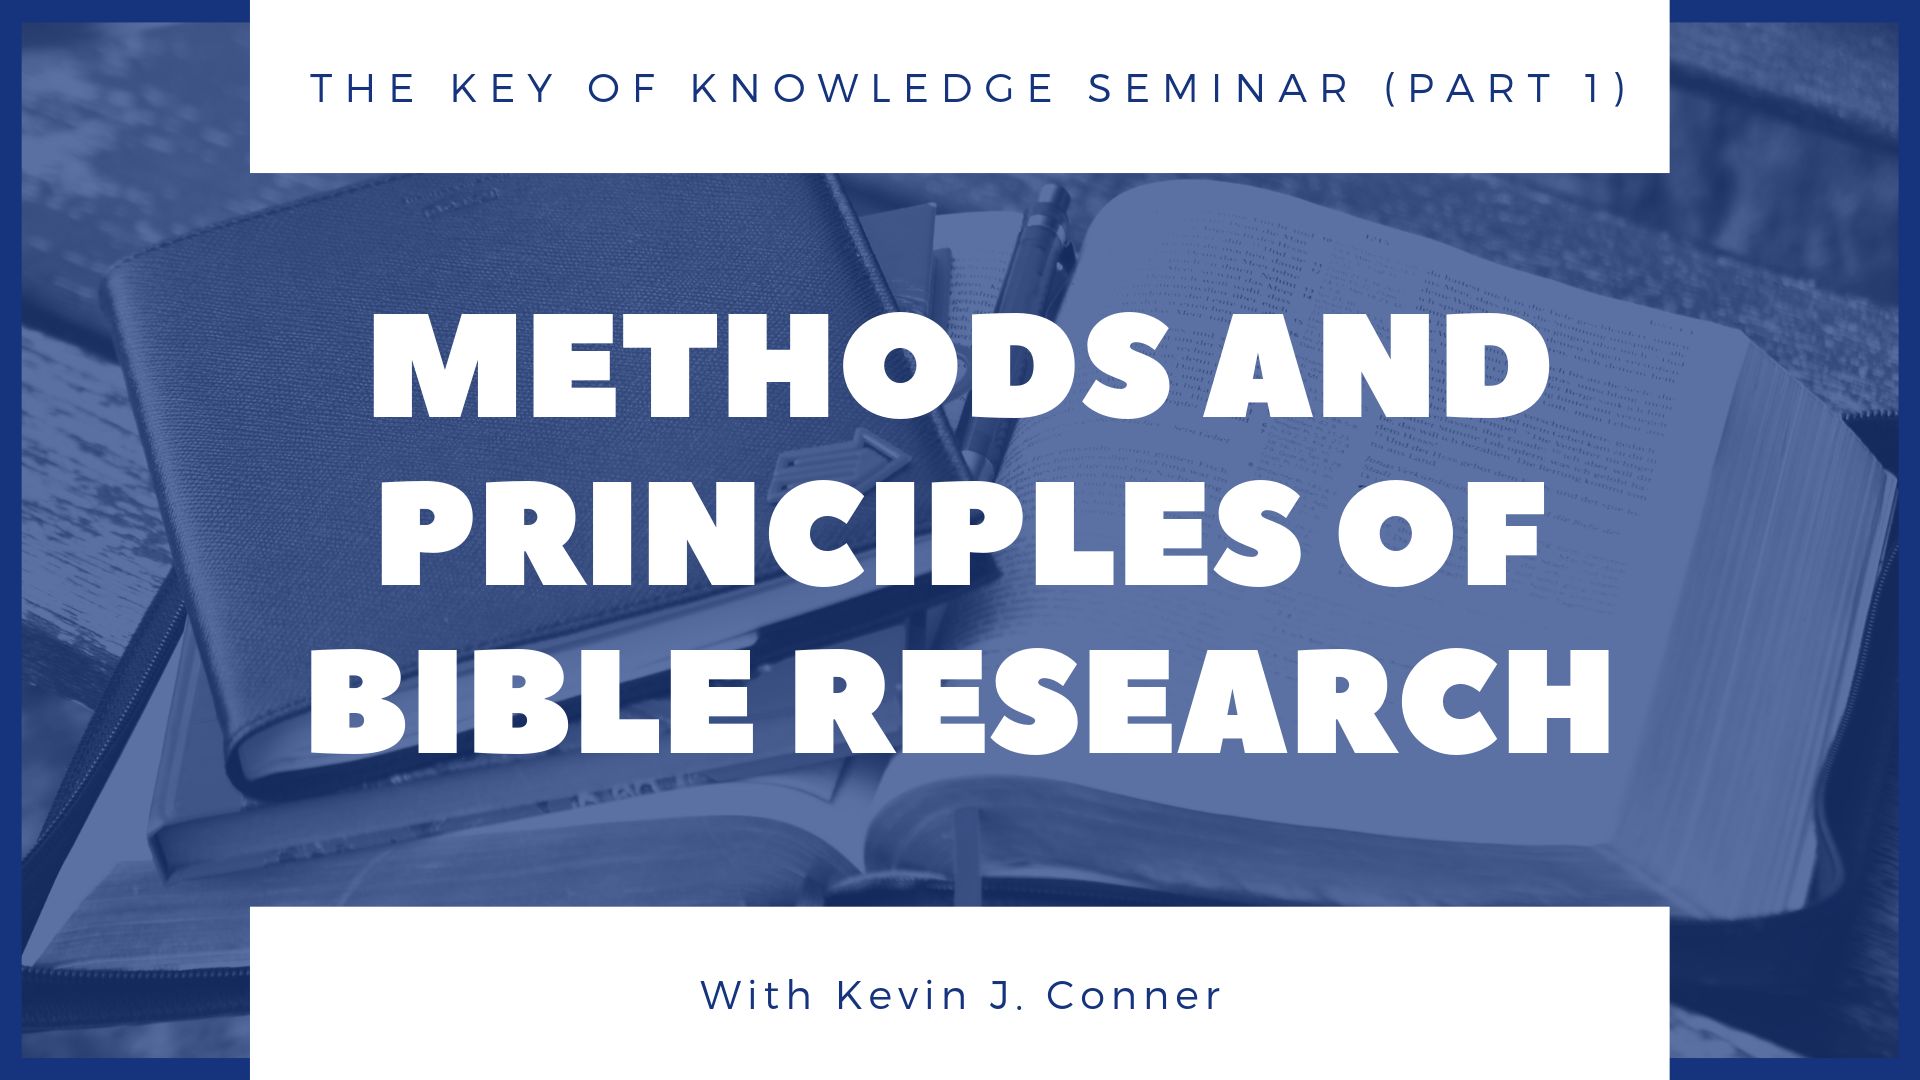 Methods and Principles of Bible Research (Key of Knowledge Seminar – Part 1)